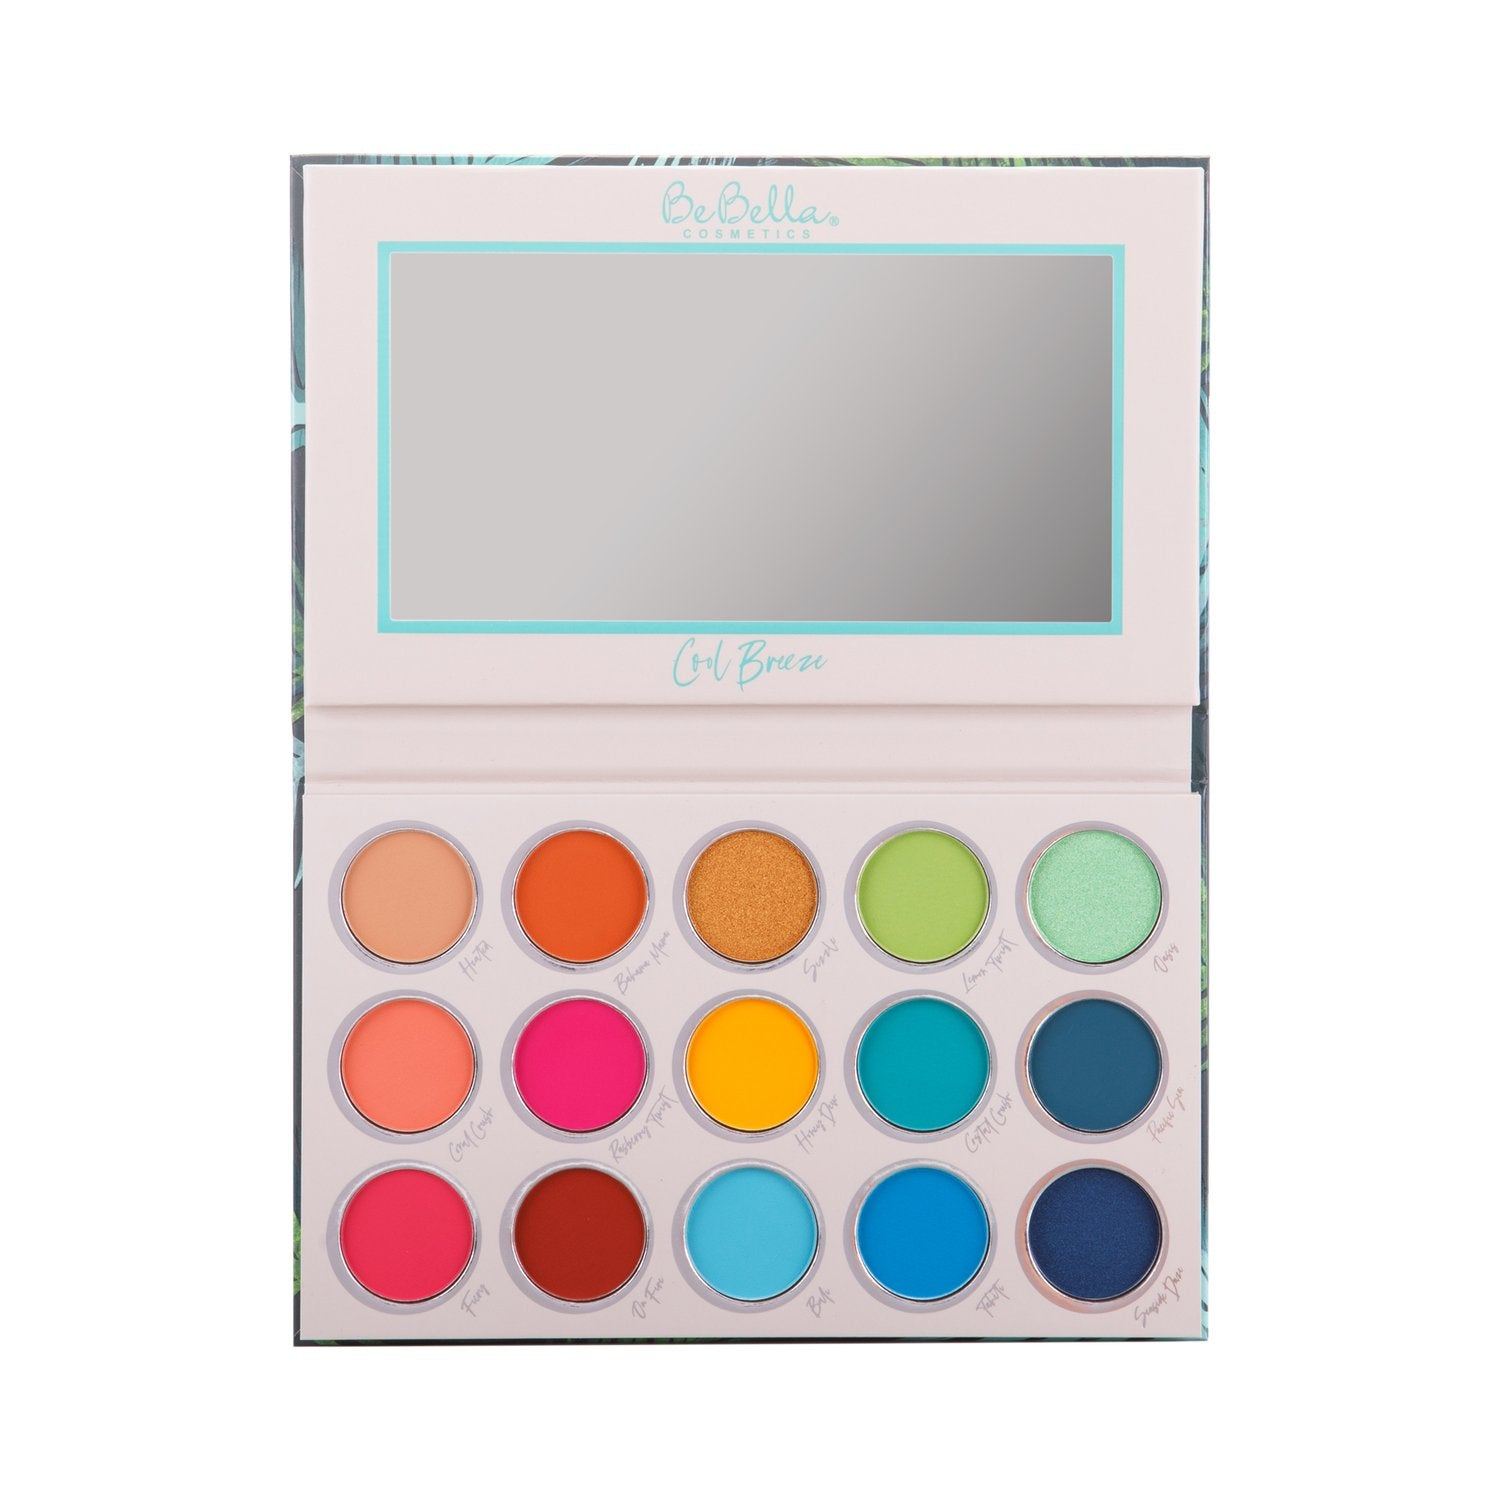 Cool Breeze Palette by BeBella